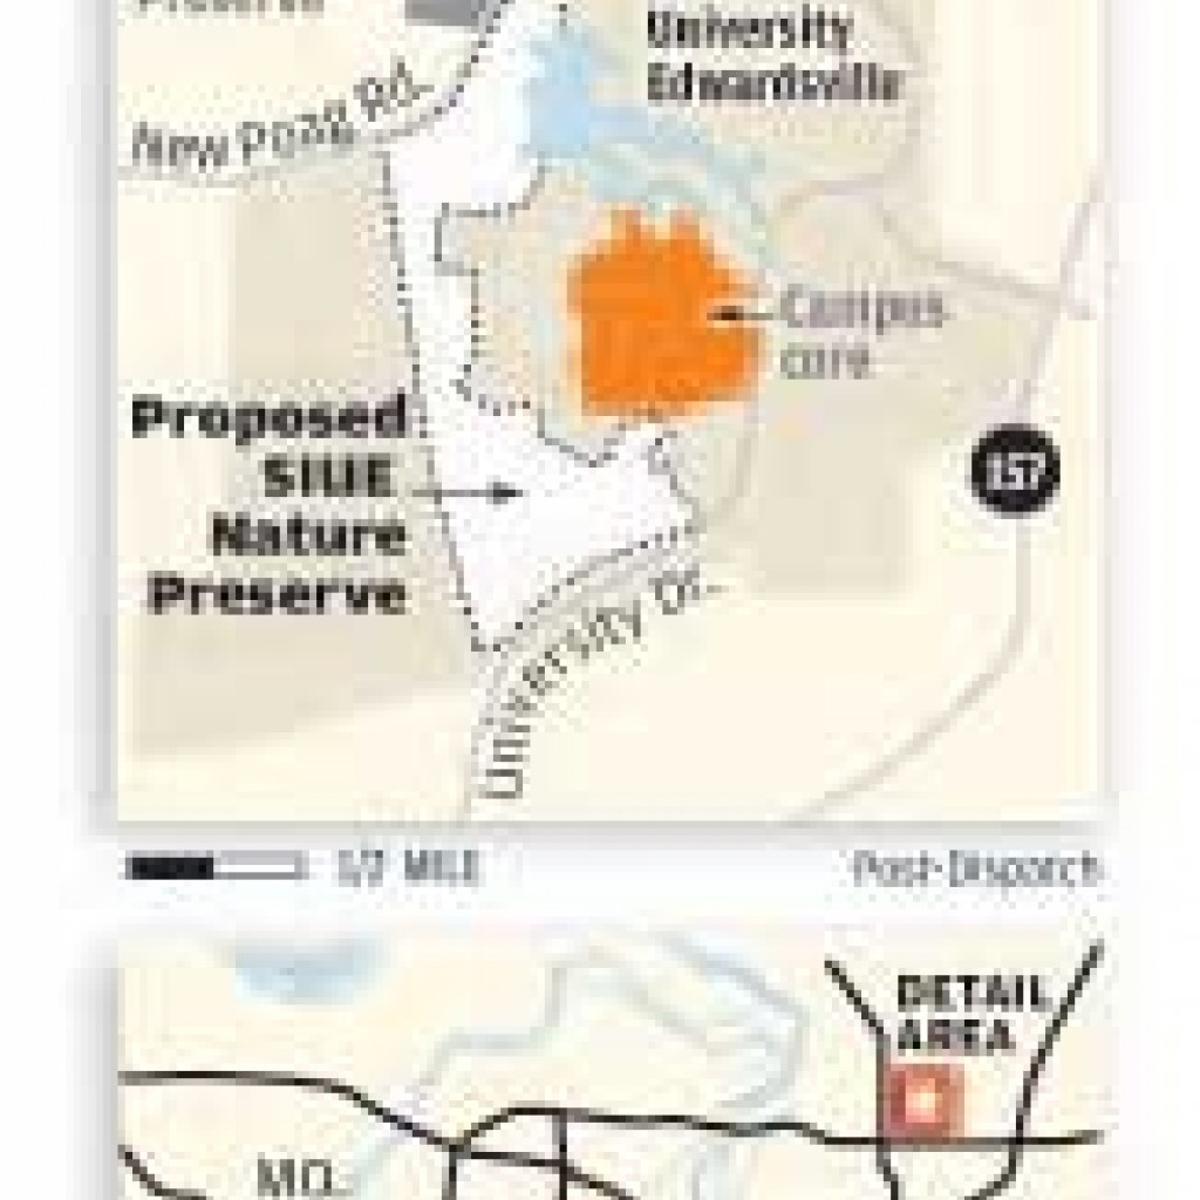 SIUE would create nature preserve on campus | Illinois ... on